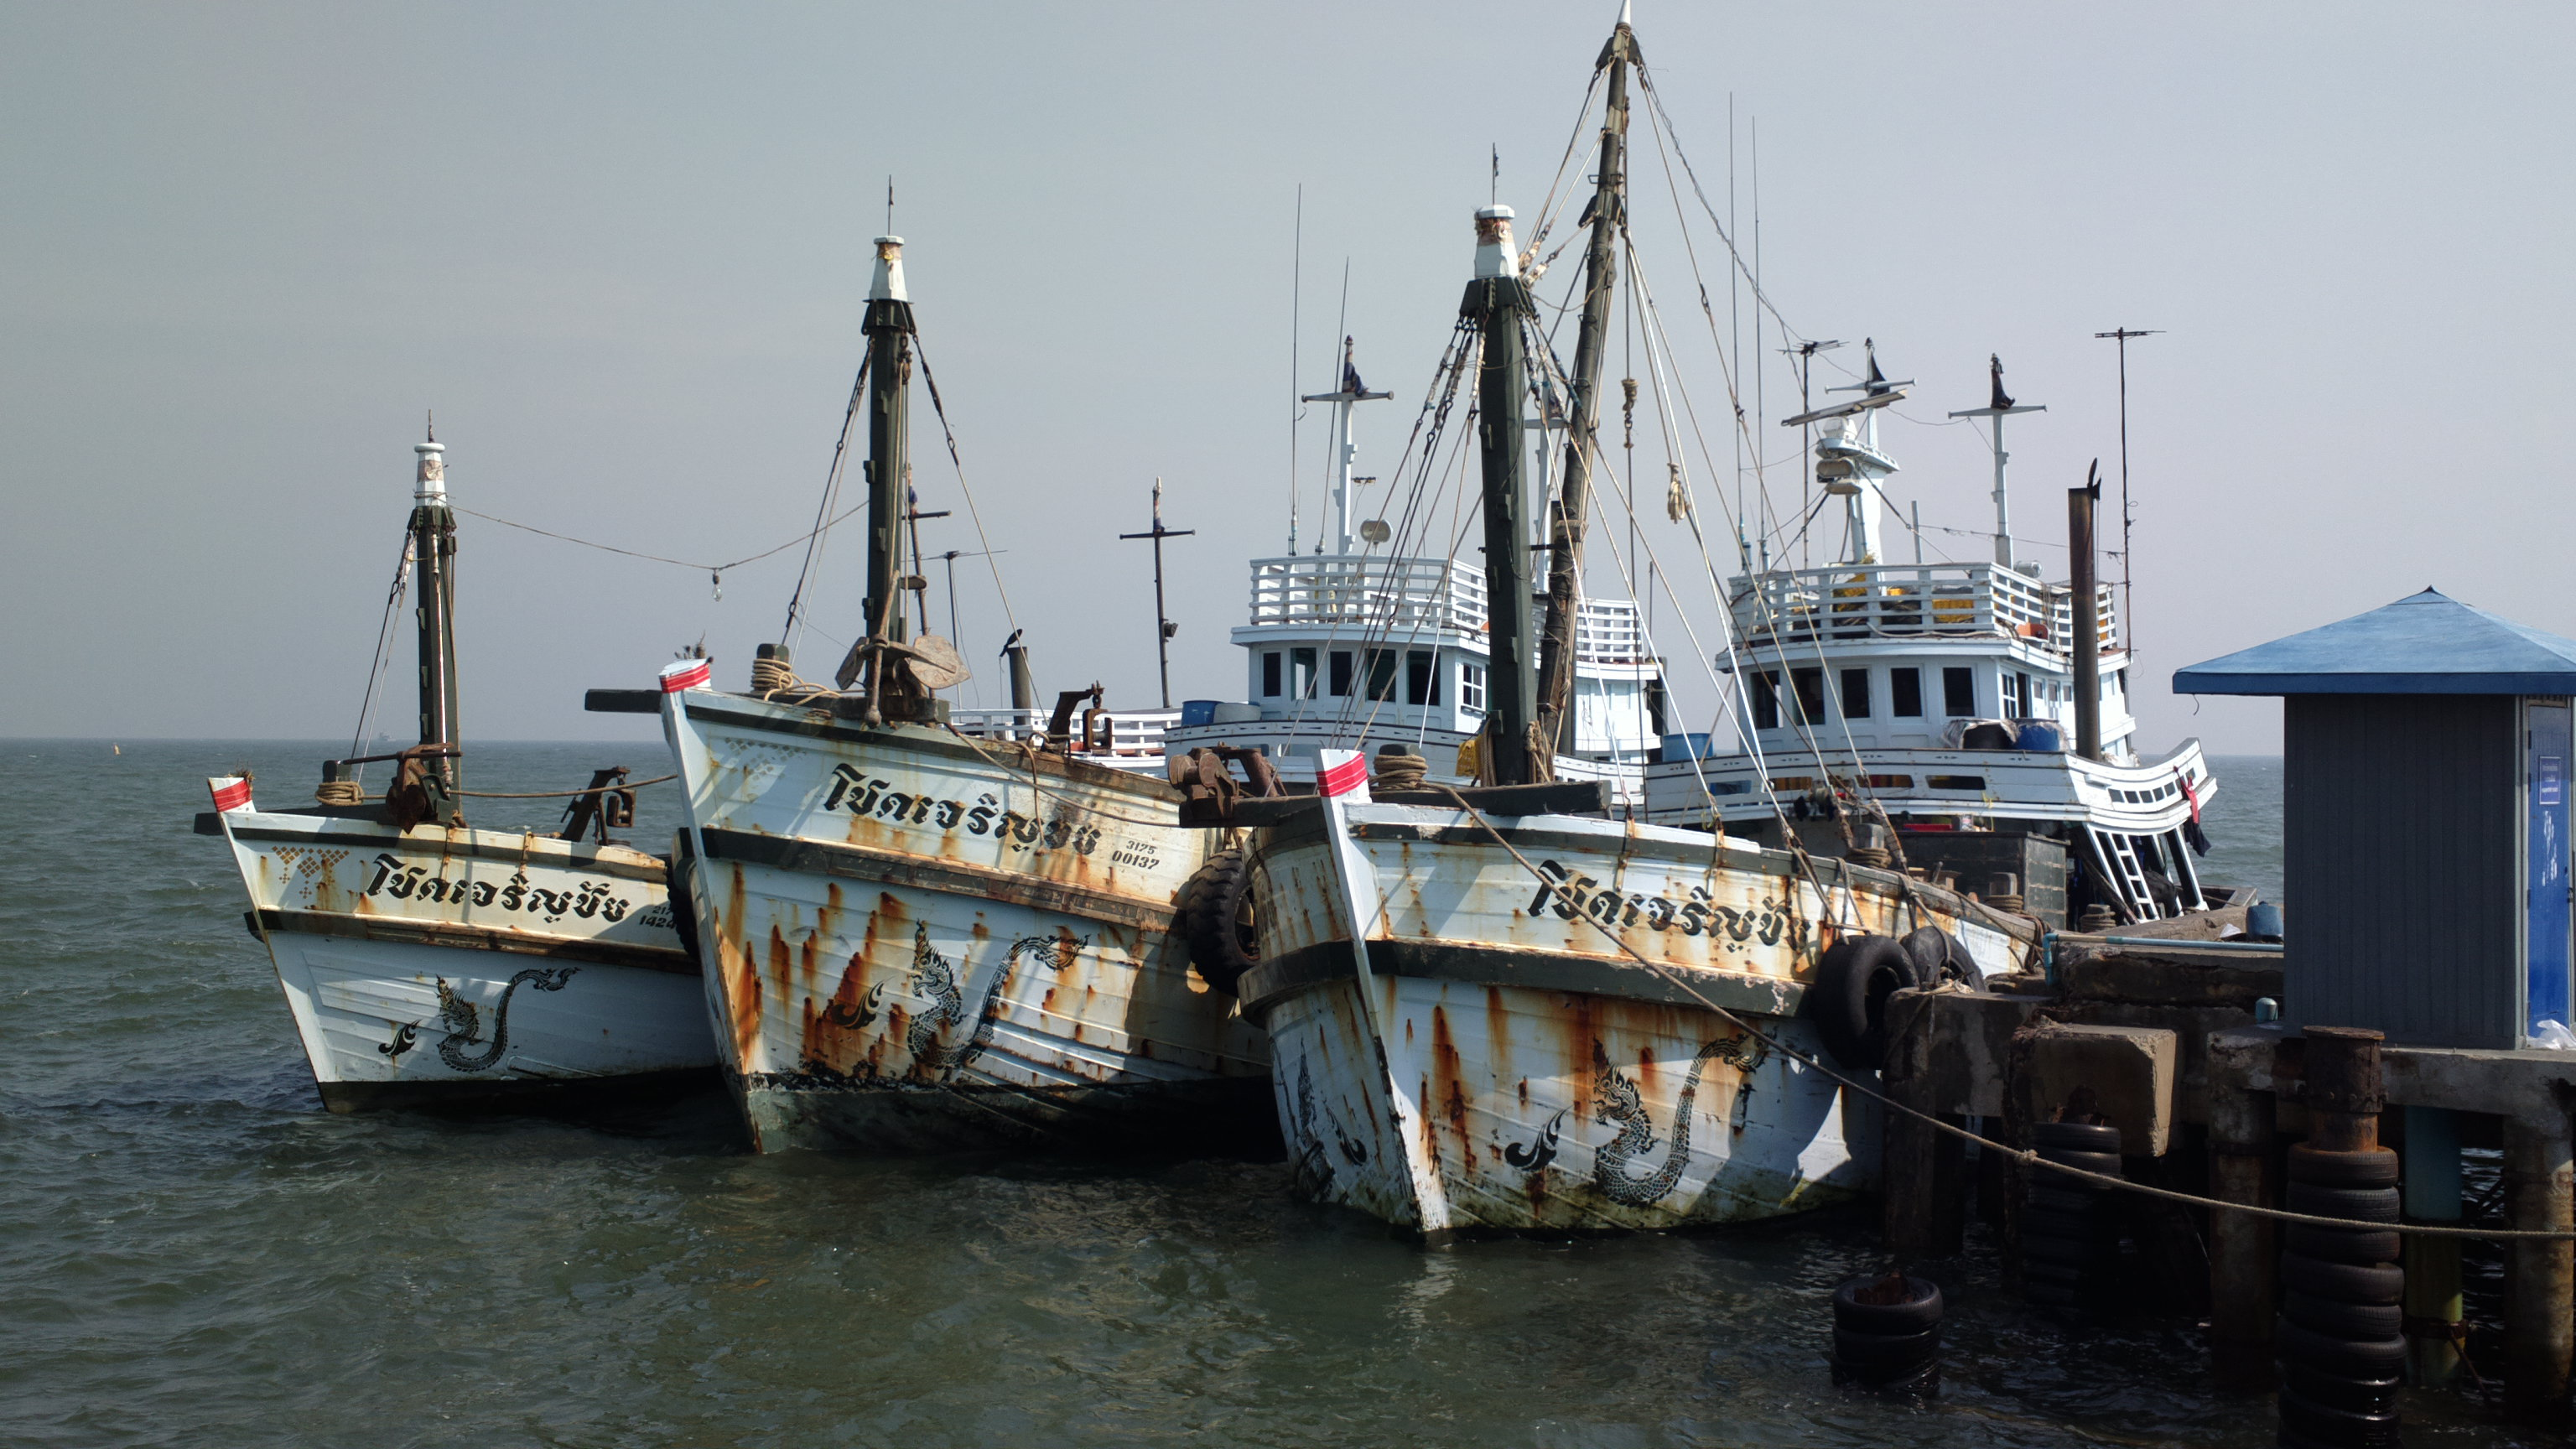 Photos of places in and around hua hin for Fishing spots near me no boat